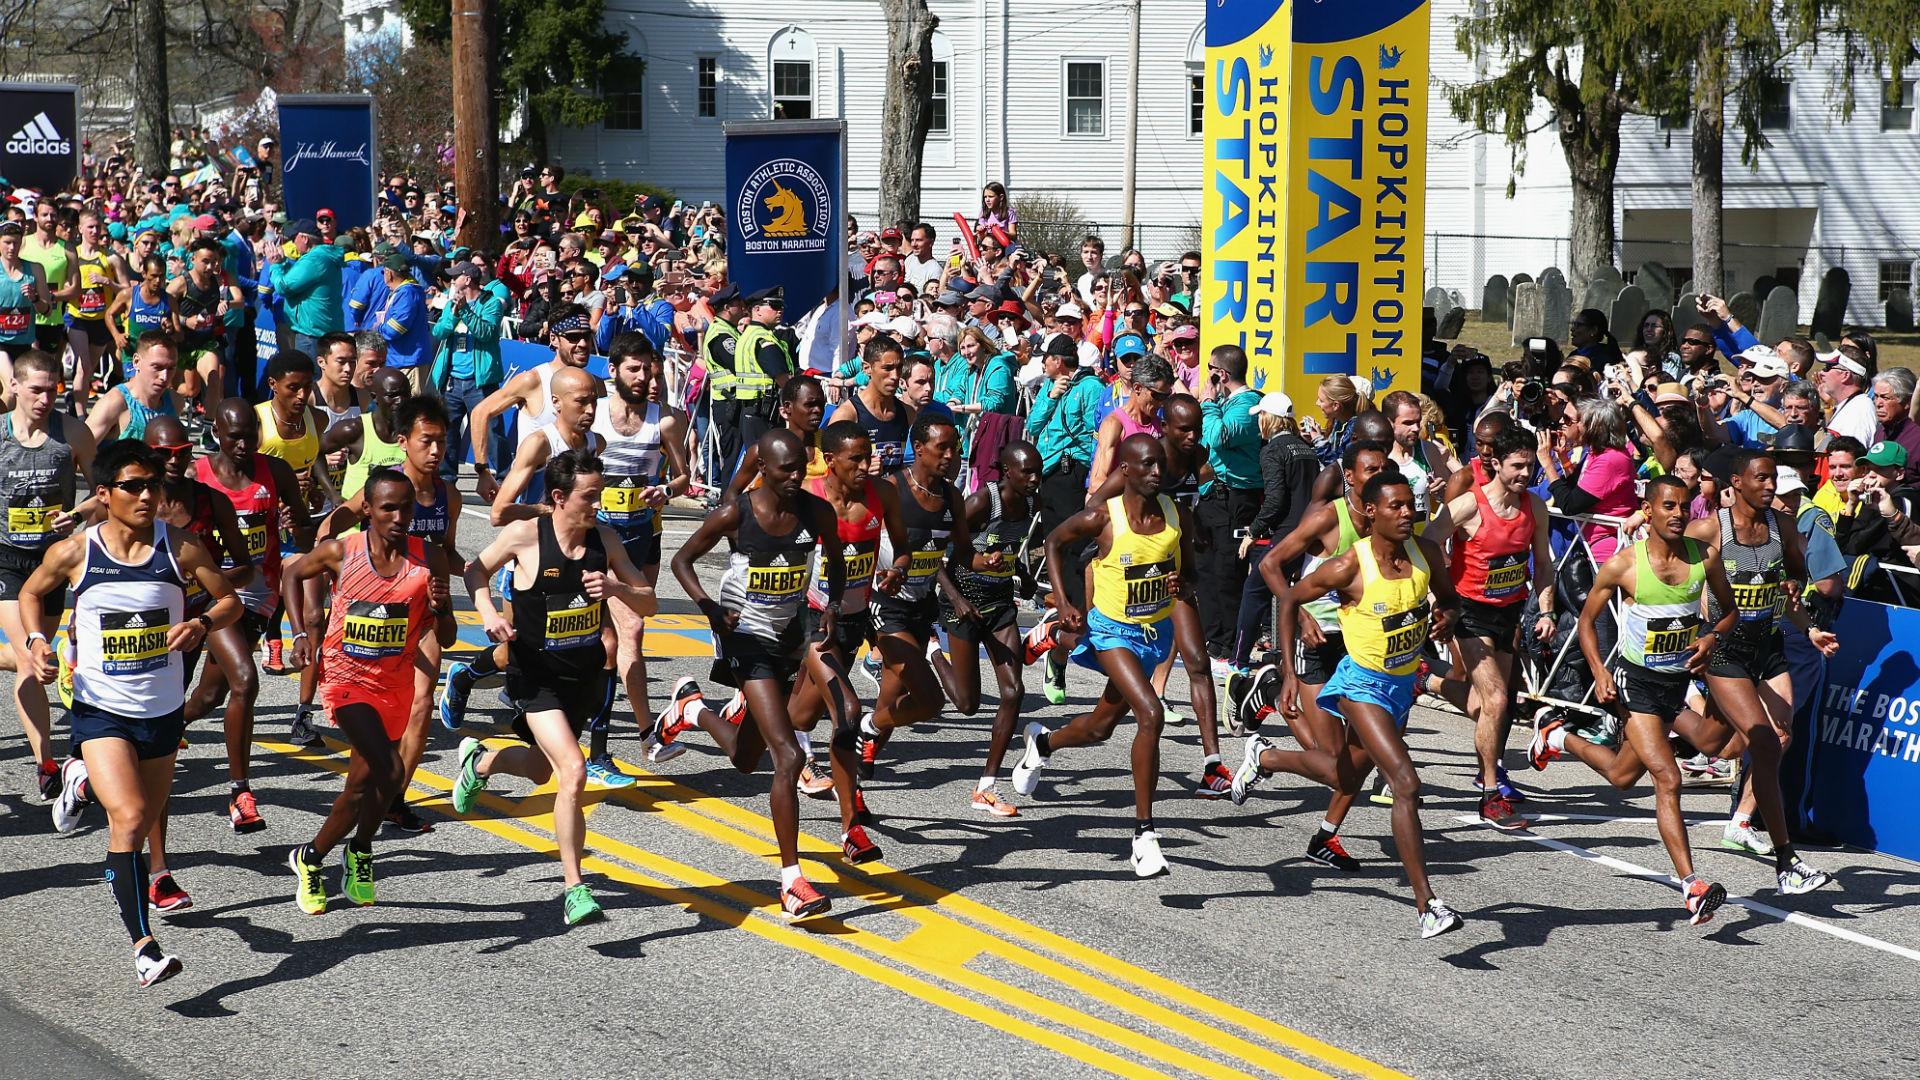 Boston Marathon 2016: Lemi Berhanu Hayle, Atsede Baysa prevail on ...